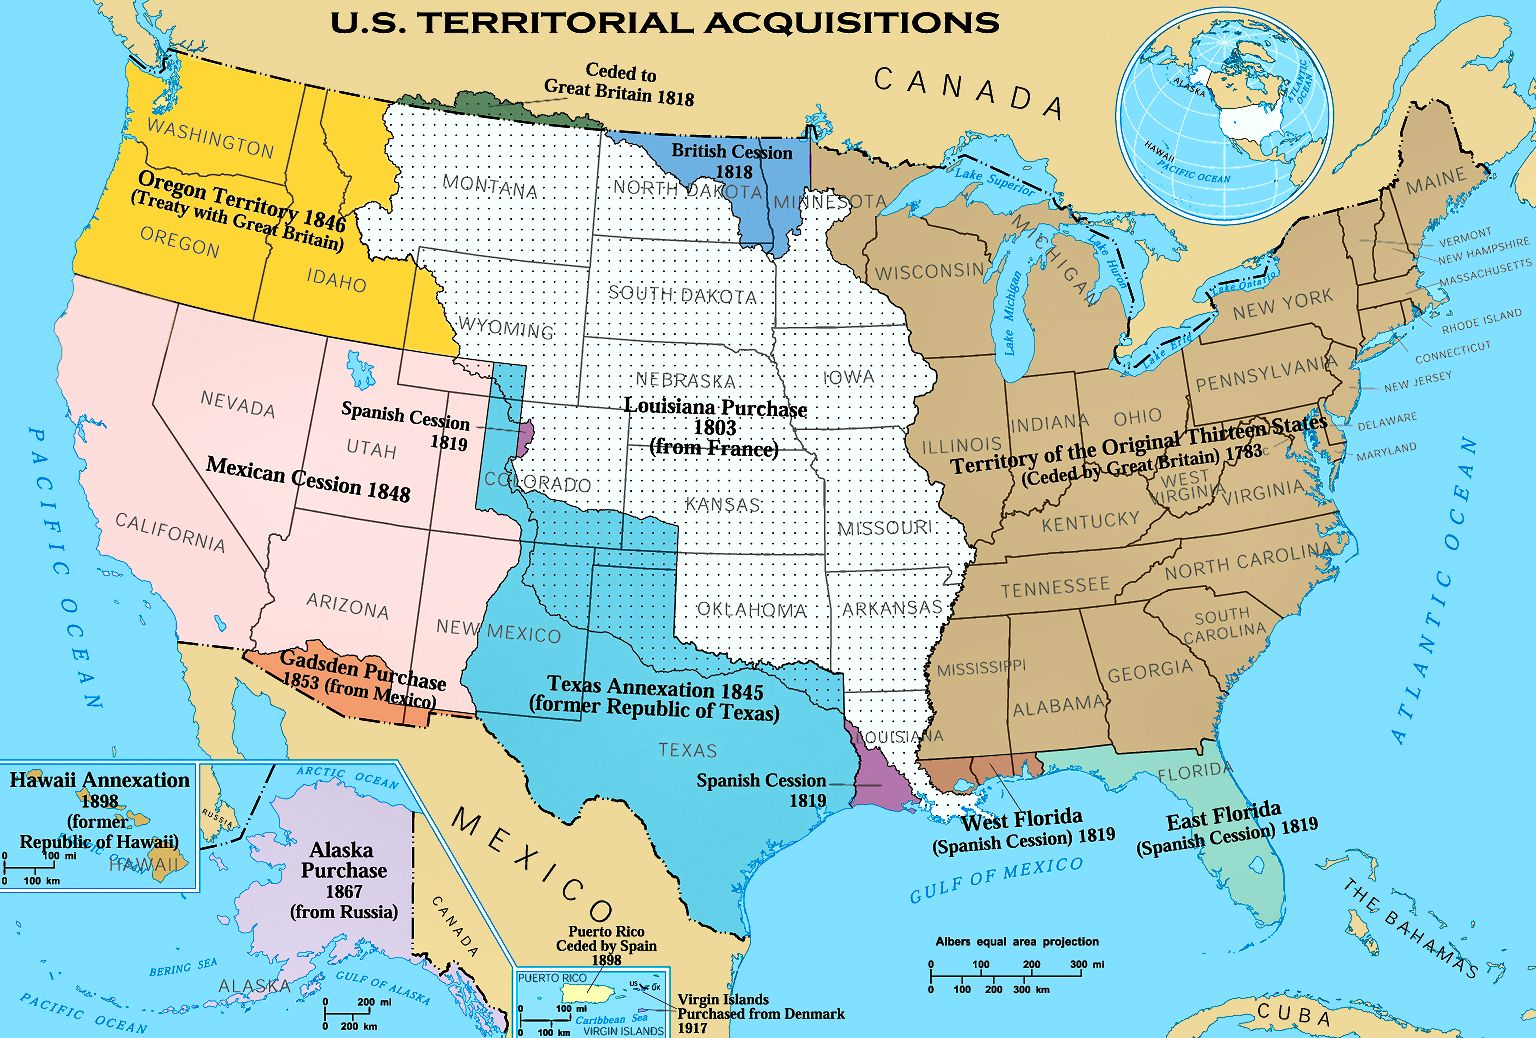 evaluate the main arguments for american territorial expansion from 1820 to 1860 Us foreign policy toward latin america in the 19th century initially focused on excluding or limiting the military and economic influence of european powers, territorial expansion, and encouraging american commerce these objectives were expressed in the no transfer principle (1811) and the monroe doctrine (1823) american policy was.